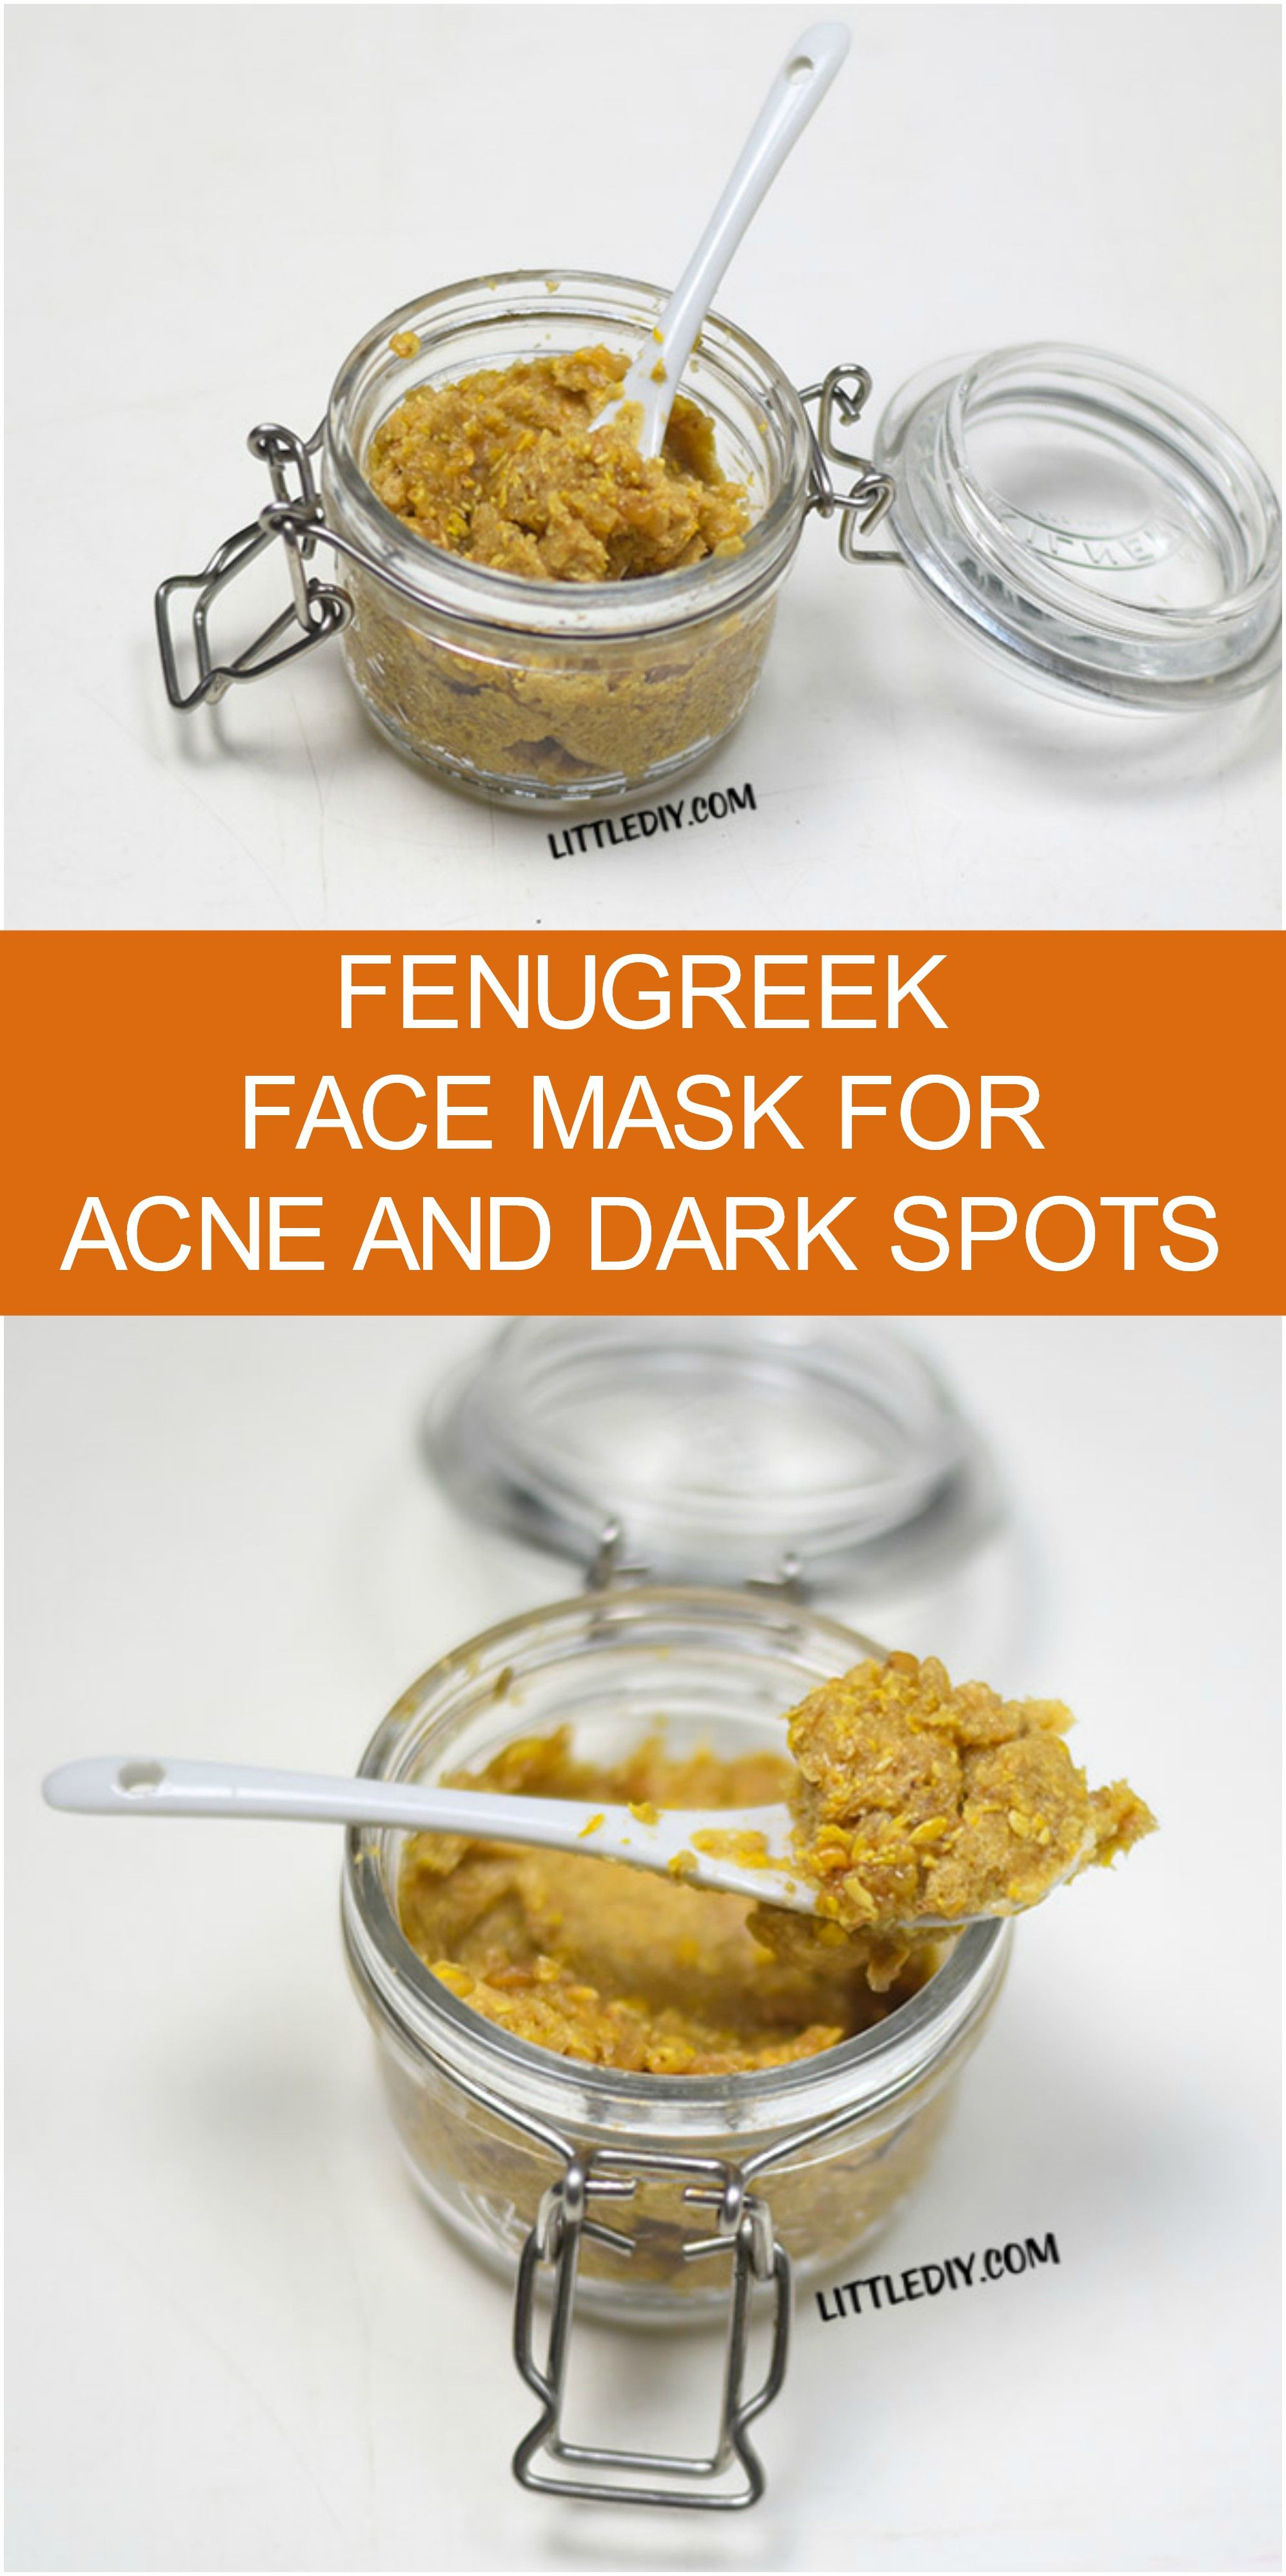 fenugreek on face